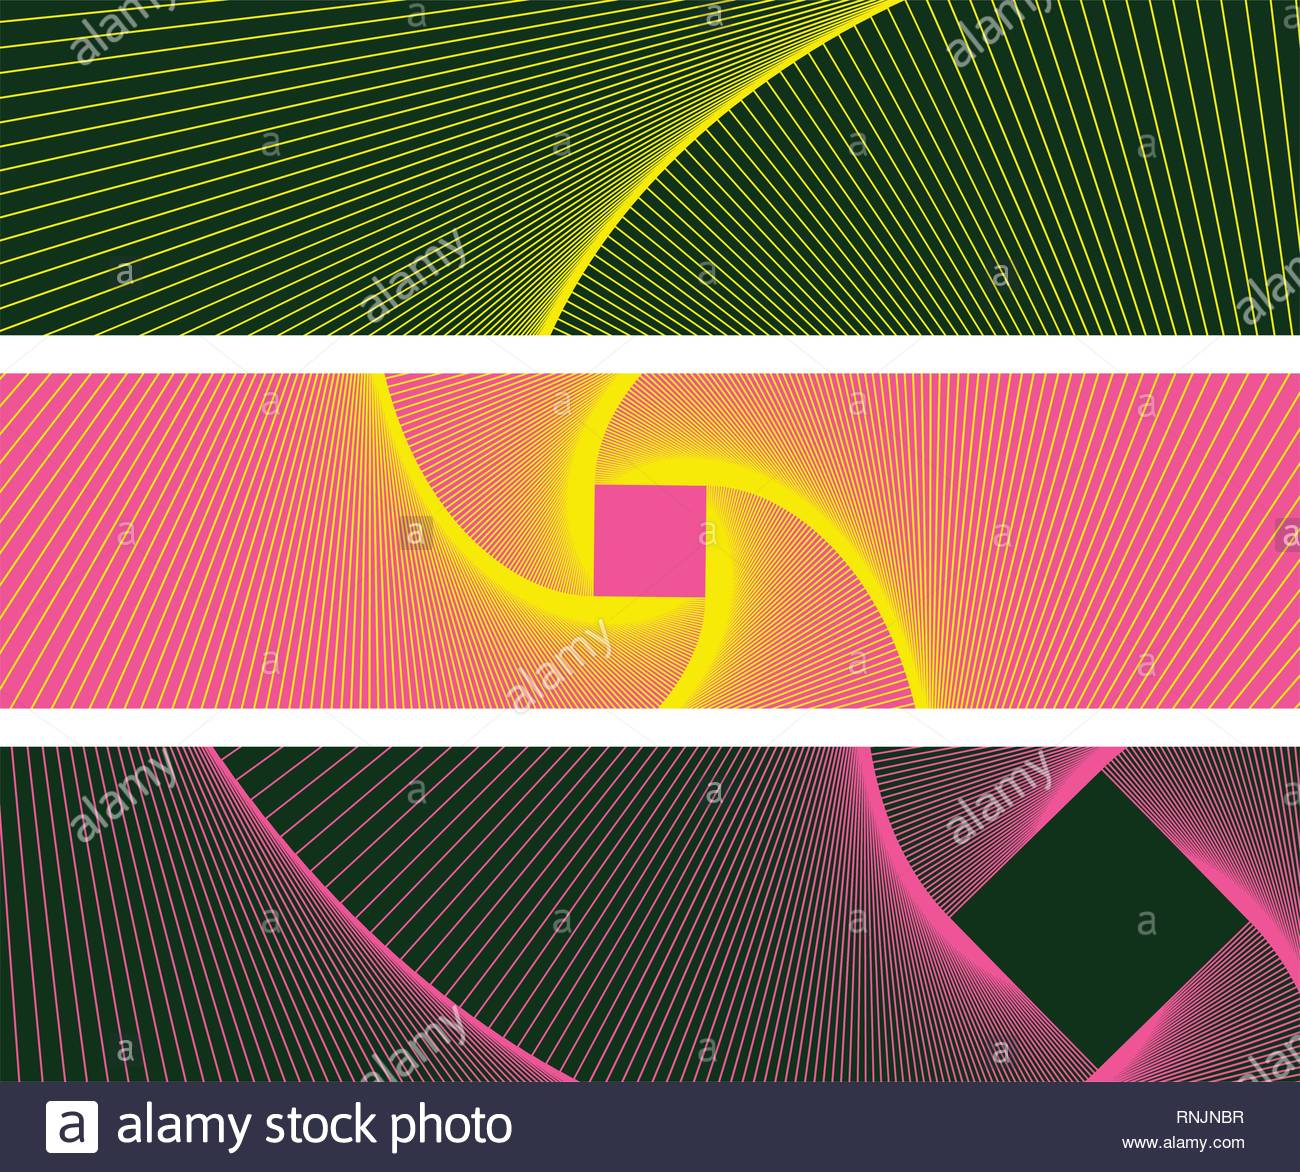 graphic abstract banners with linear vortex pattern in yellow pink shades - Stock Vector